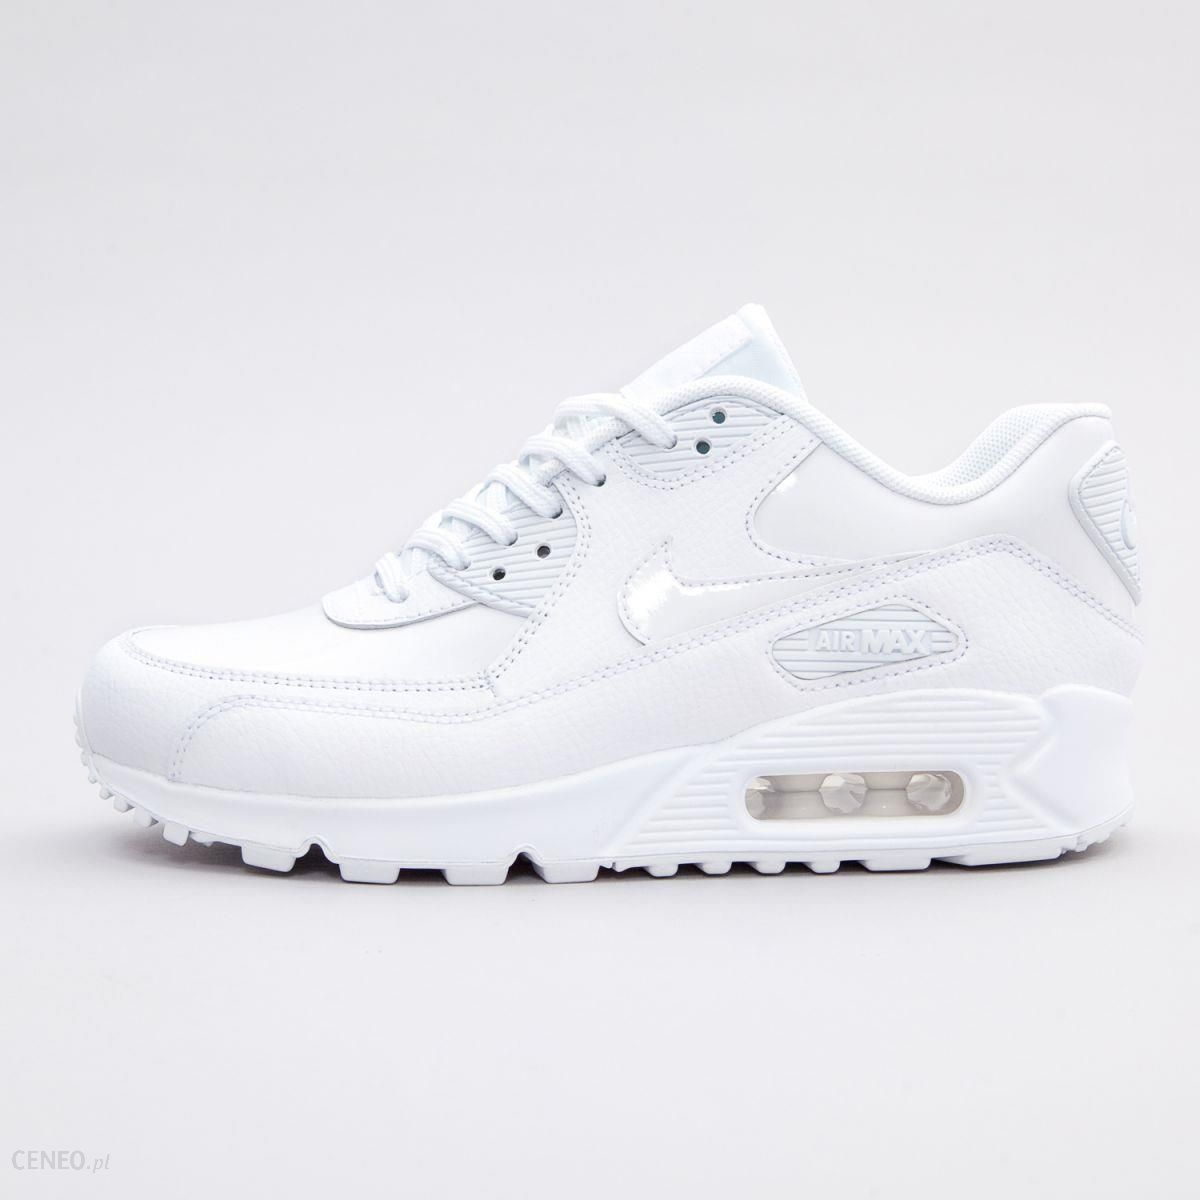 Buty Damskie Nike Air Max 90 Leather Shoe 921304 101